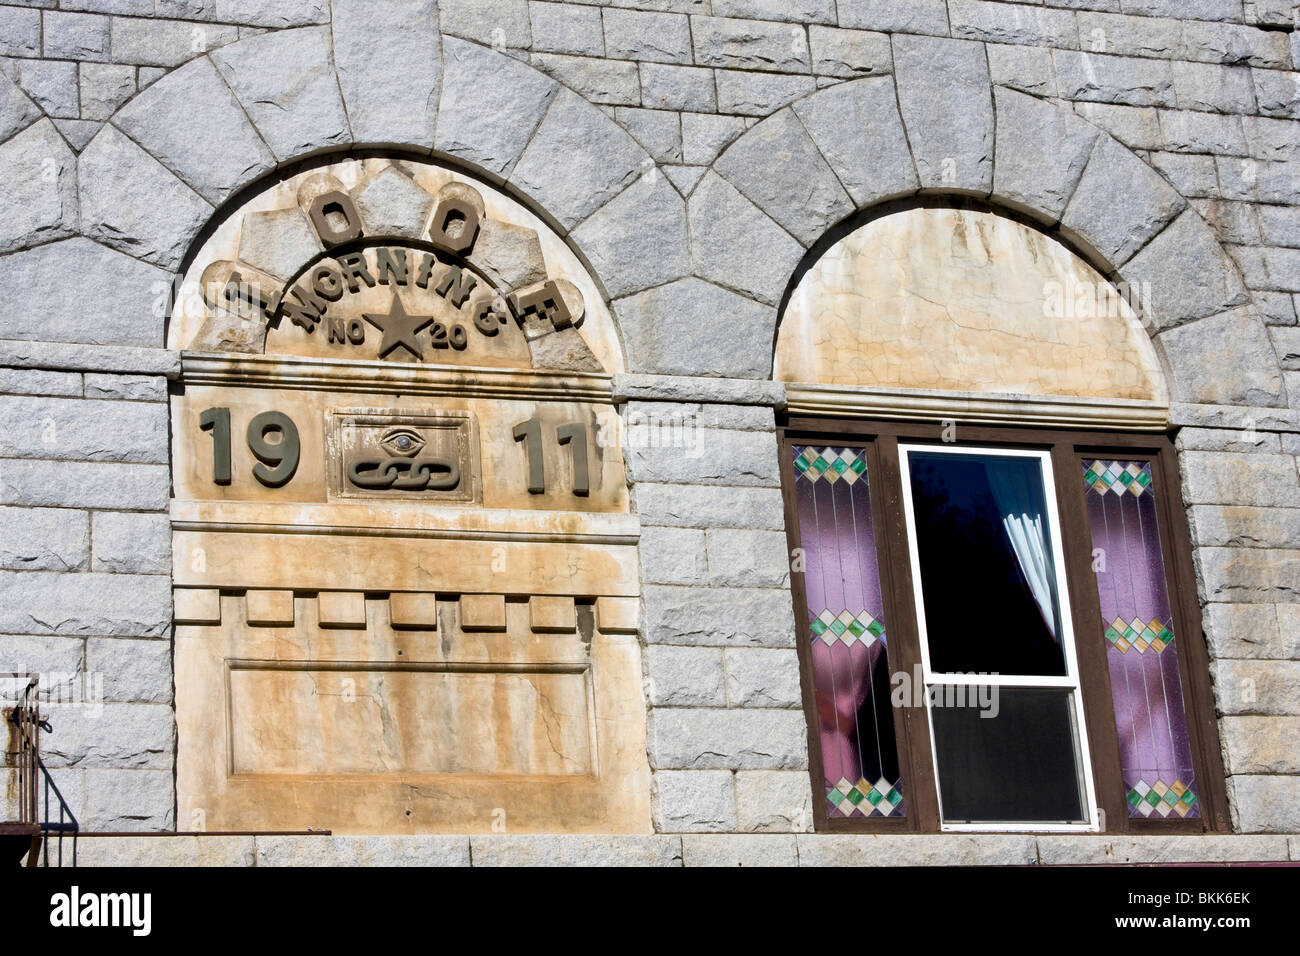 Old stone building in Placerville, California, USA. This was the Independent Order of Odd Fellows lodge in town. - Stock Image